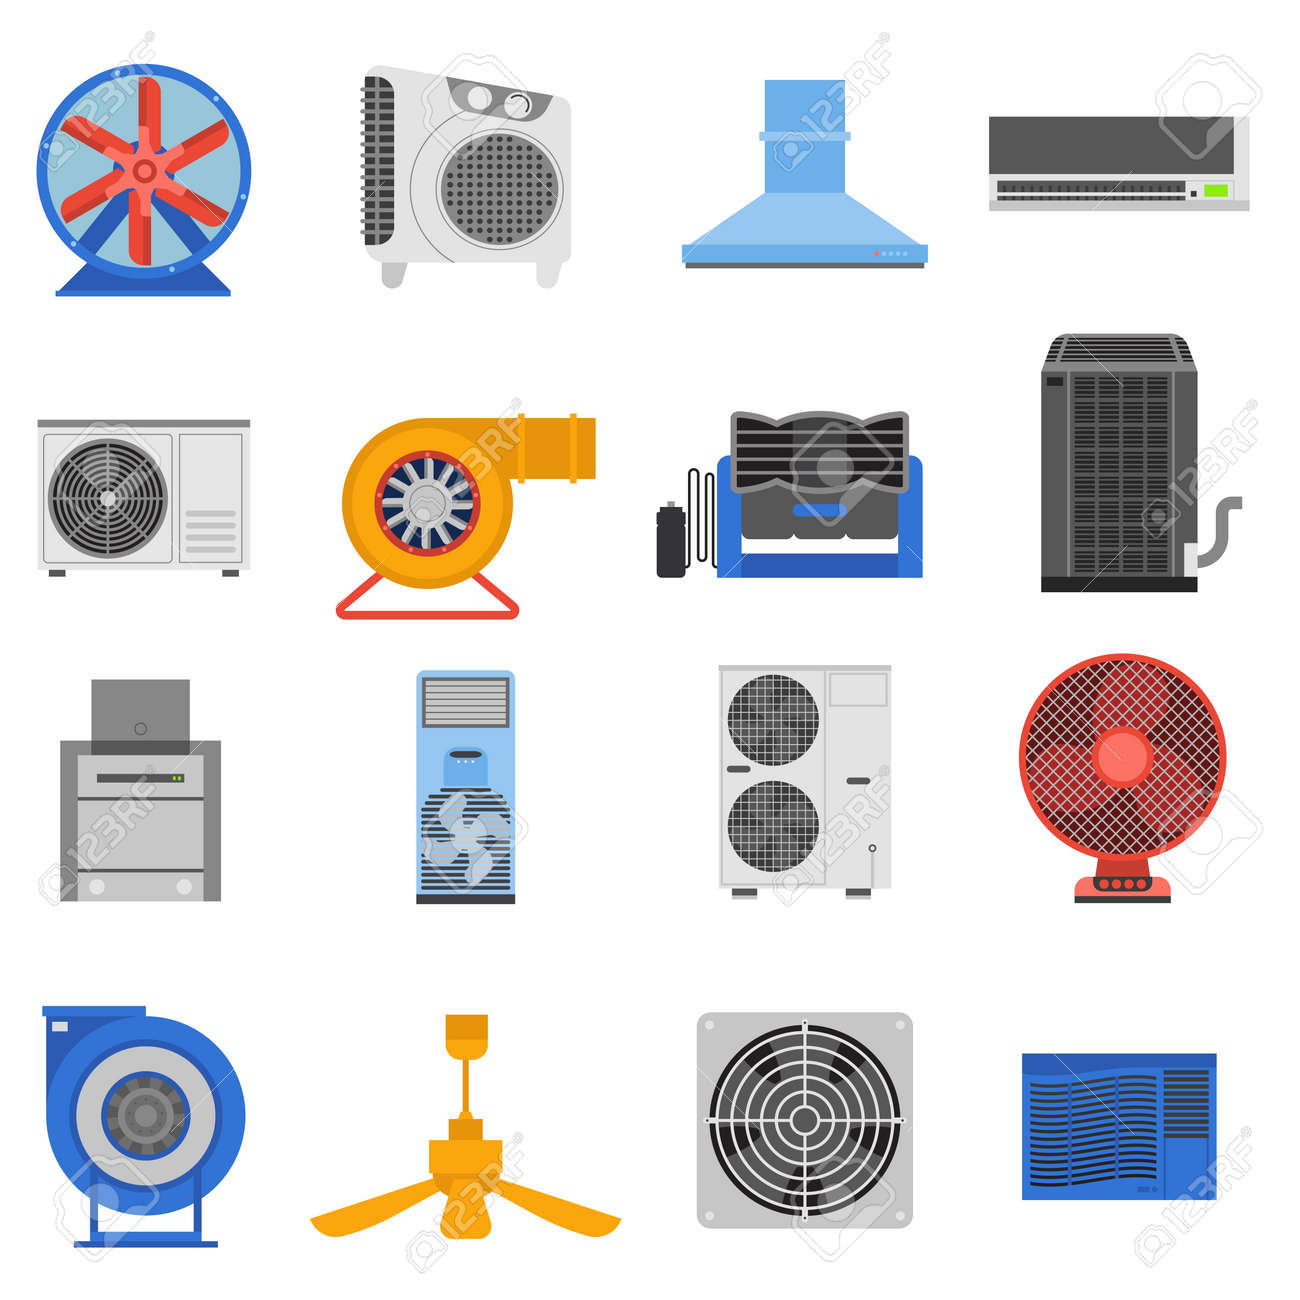 Design Ventilator 12 575 Ventilator Stock Illustrations Cliparts And Royalty Free